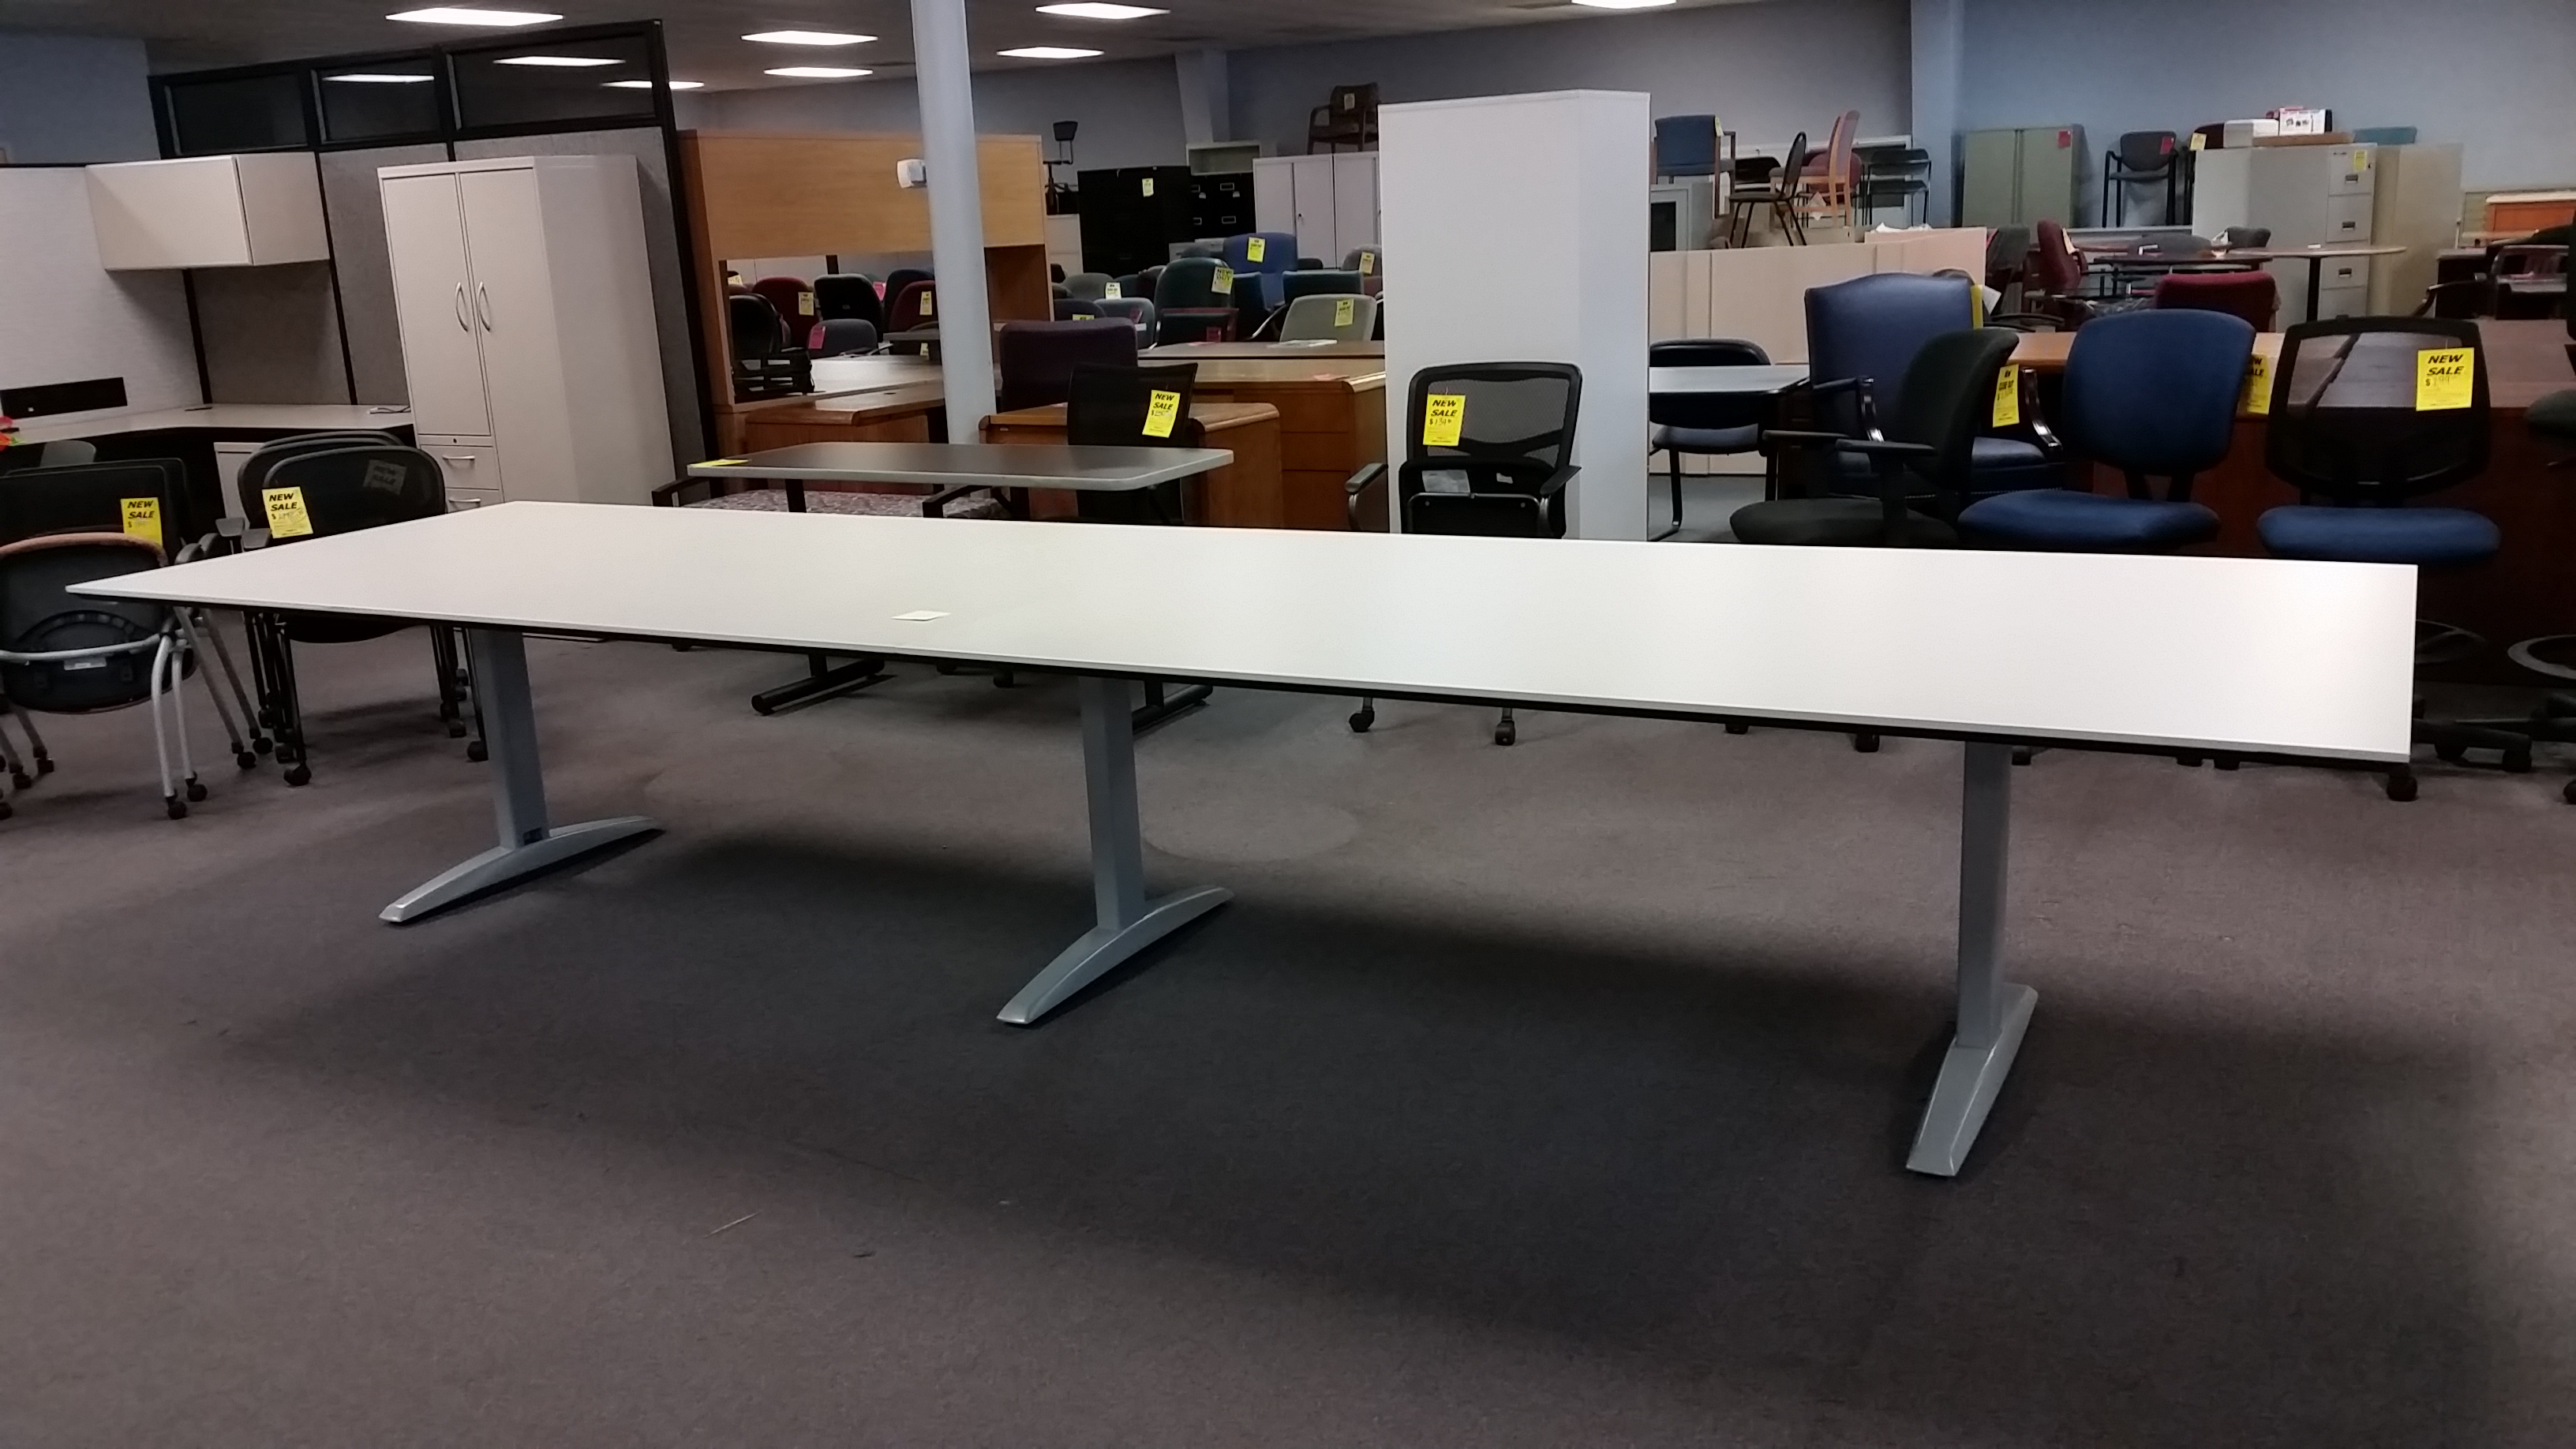 HON Conference Table Thrifty Office Furniture - 14 ft conference table